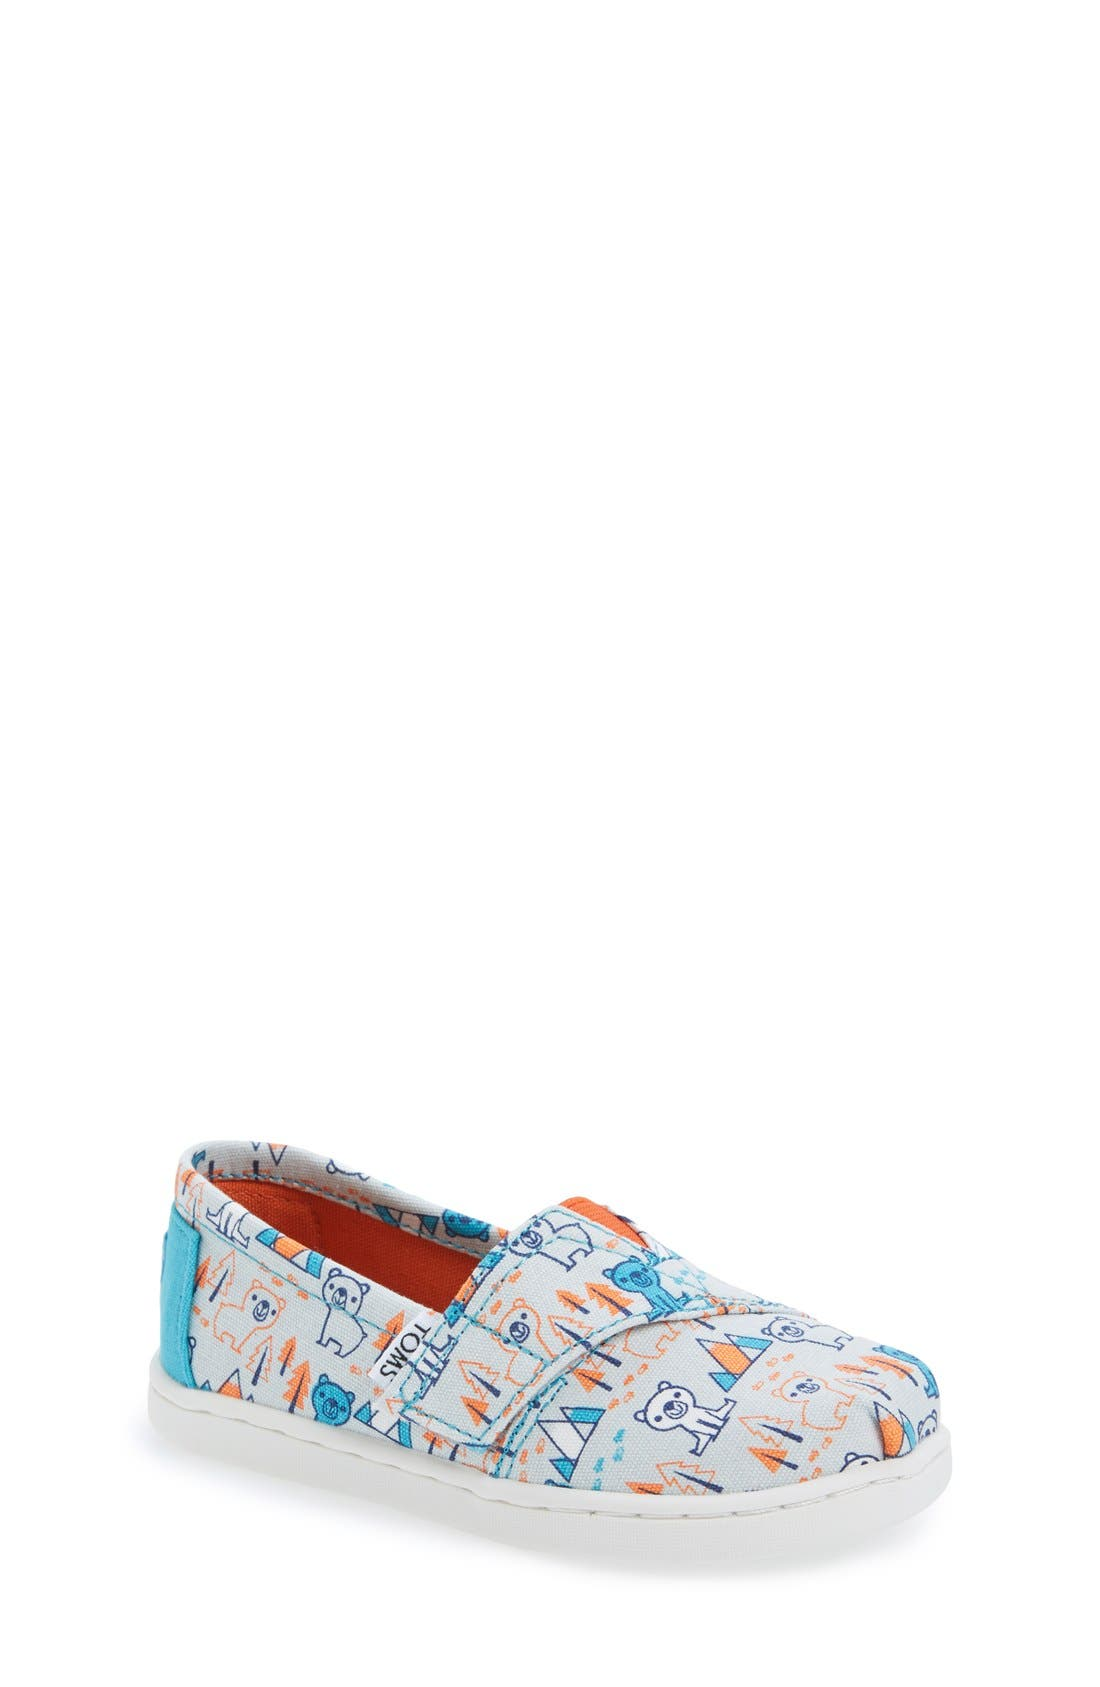 Alternate Image 1 Selected - TOMS 'Classic - Bears' Slip-On (Baby, Walker & Toddler)